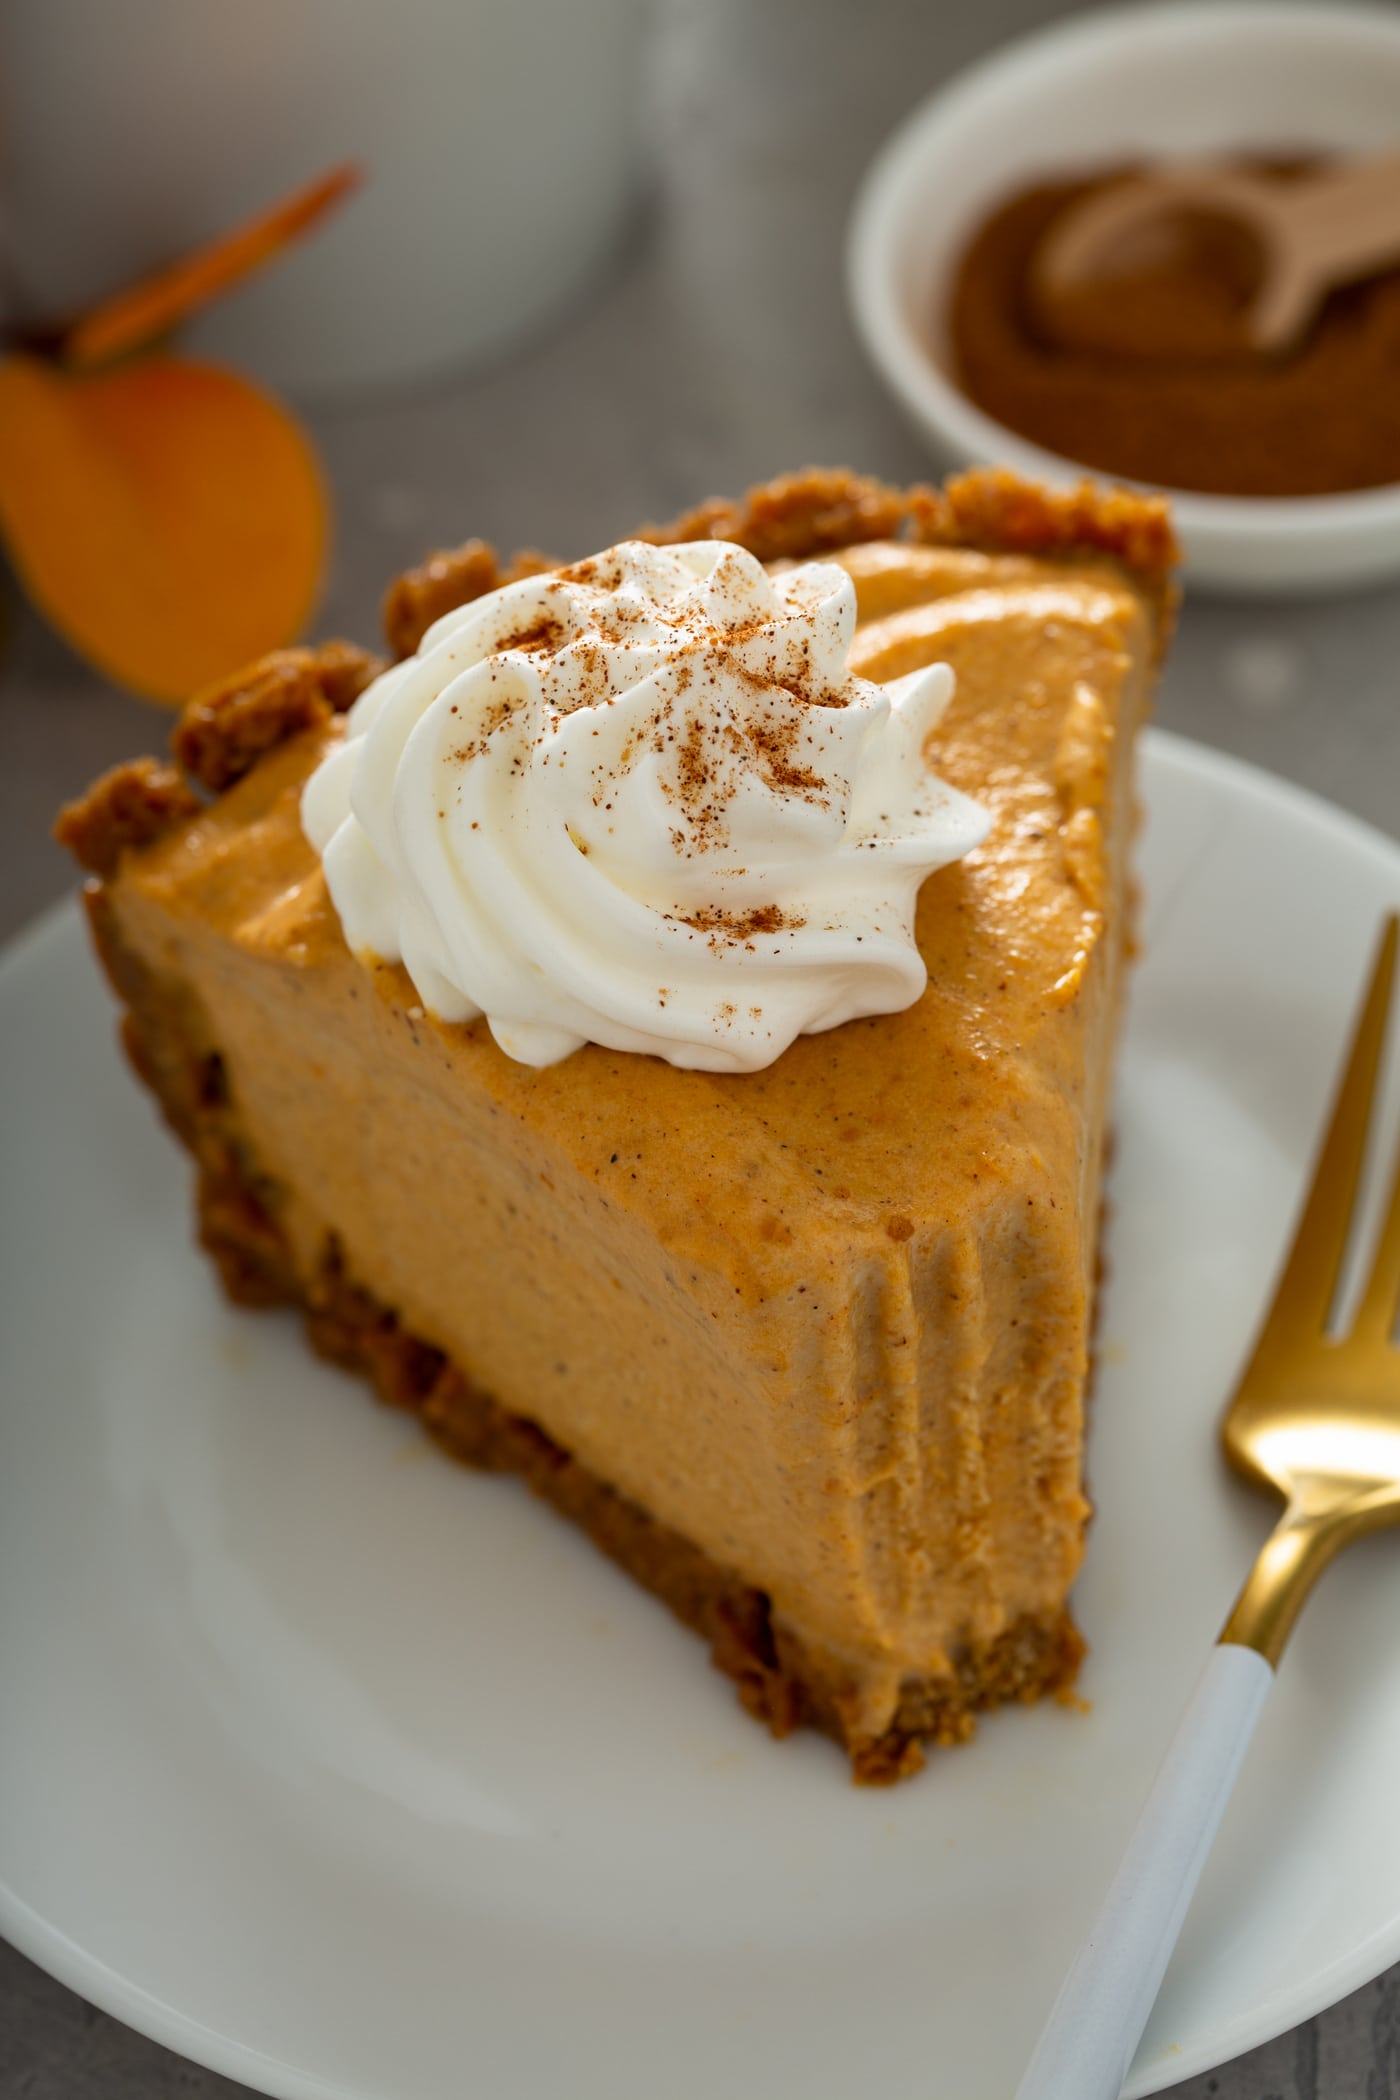 A slice of pumpkin ice cream pie with a fork next to it. A bite has been taken in the pie and it is topped with a dollop of whipped cream sprinkled with cinnamon.